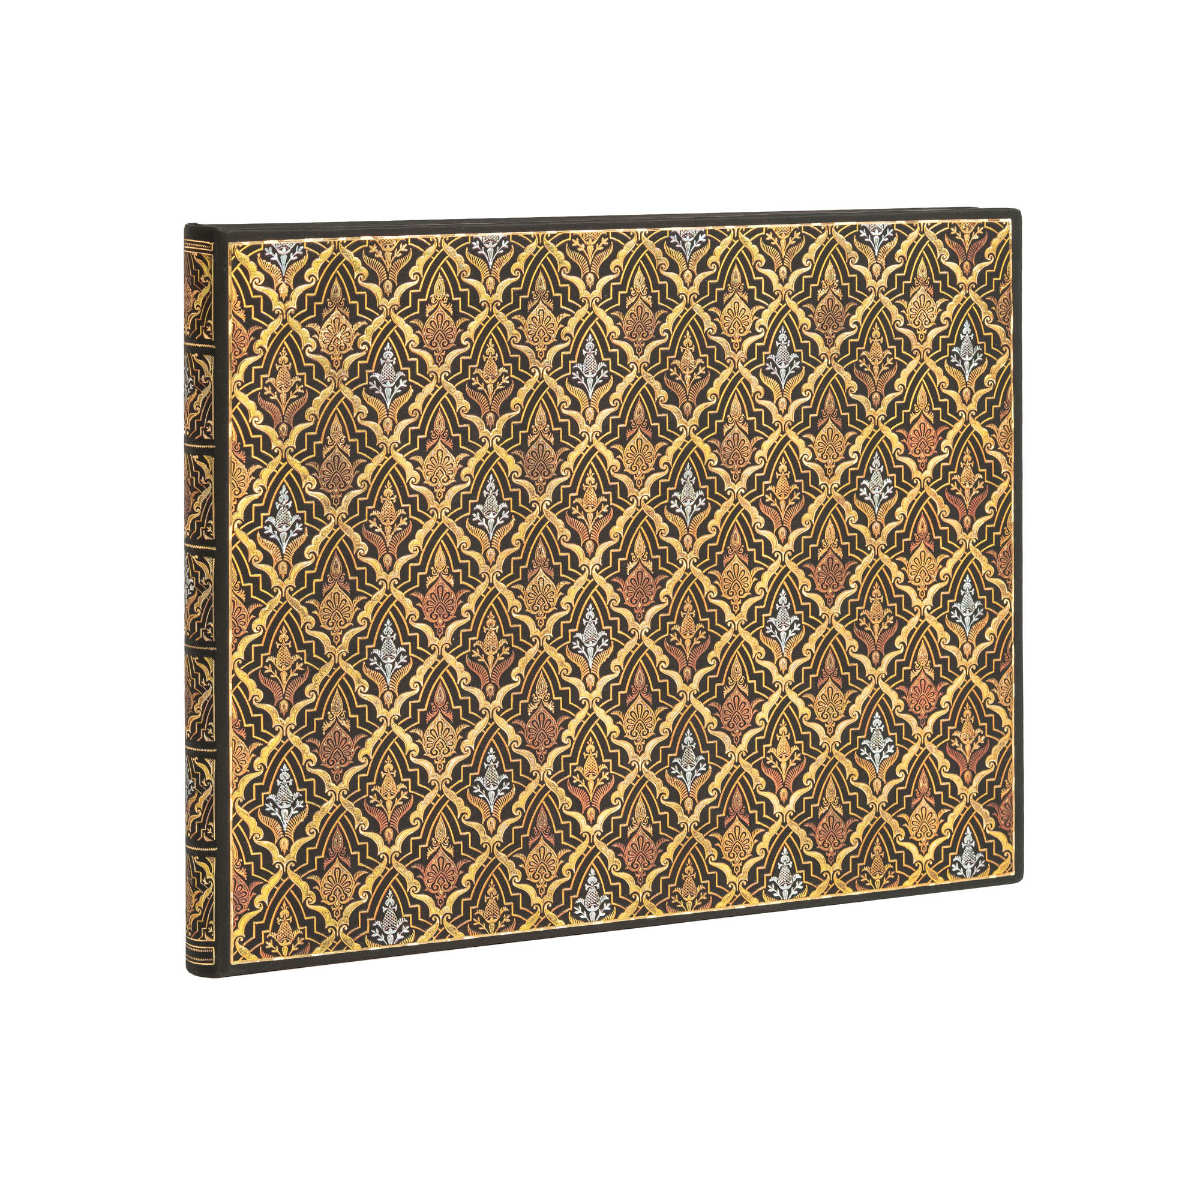 Paperblanks Voltaire Destiny 9 x 7 Inch Guest Book